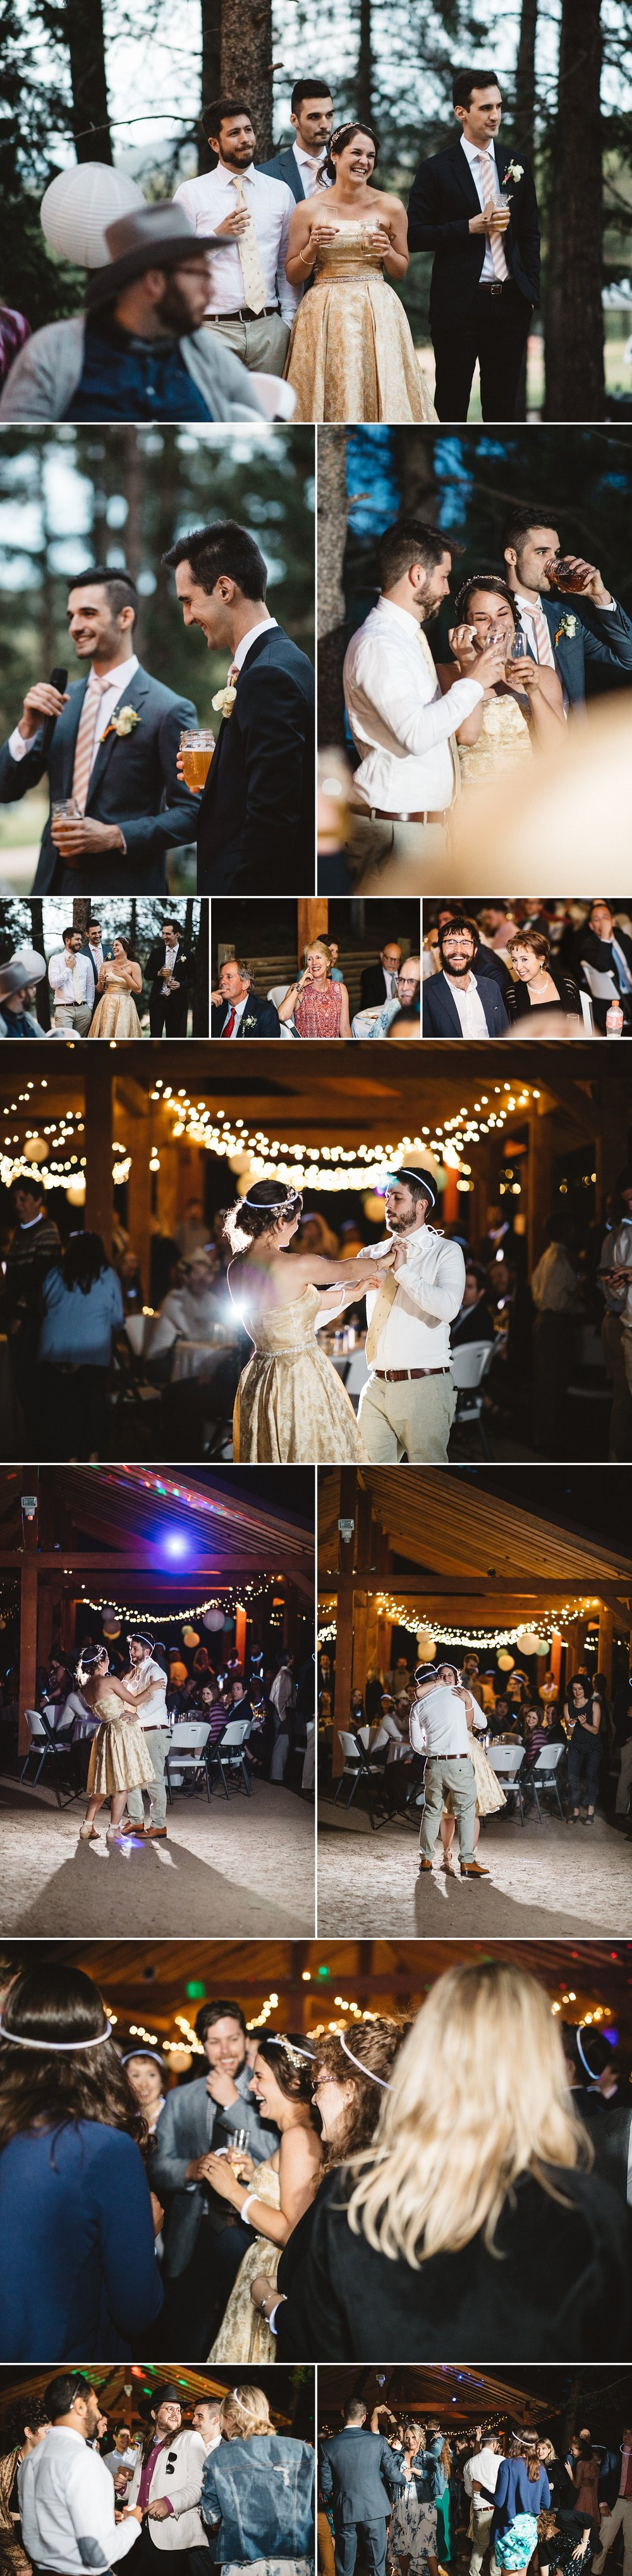 Nothing could top this night off better than a dance floor under the stars!